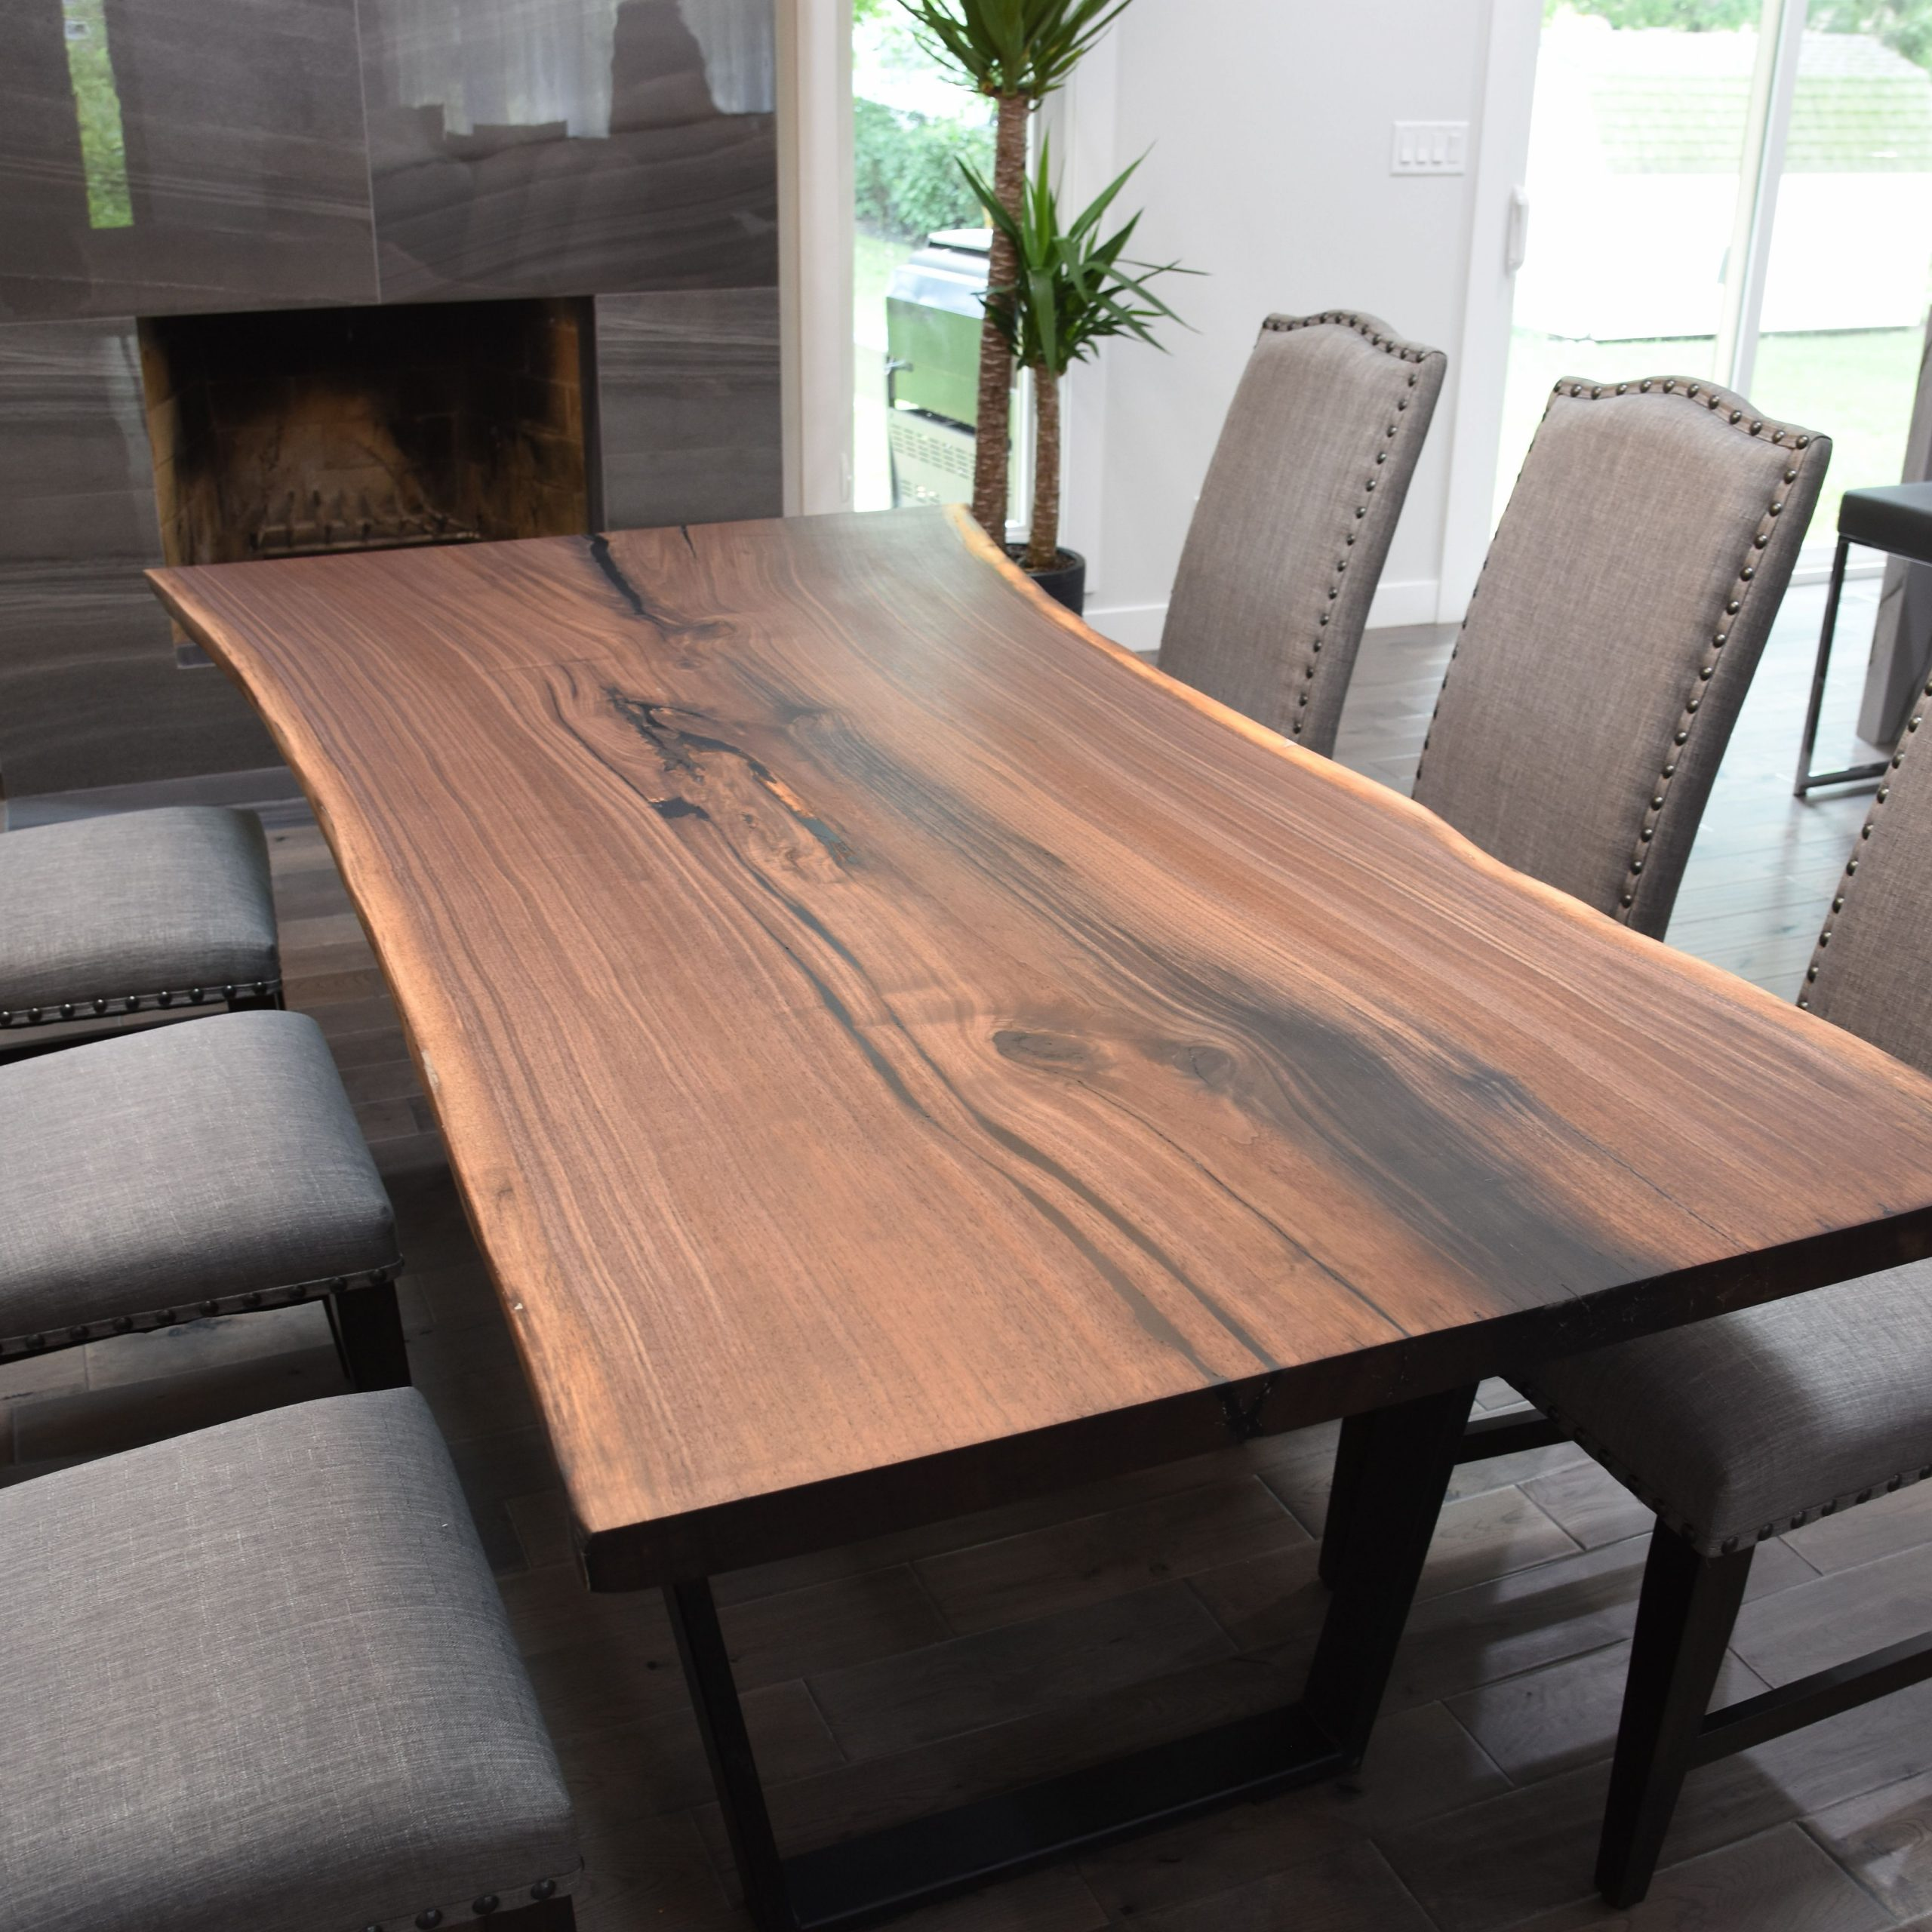 Newest Buy A Custom Single Slab Black Walnut Live Edge Dining Table Throughout Walnut Finish Live Edge Wood Contemporary Dining Tables (View 7 of 30)